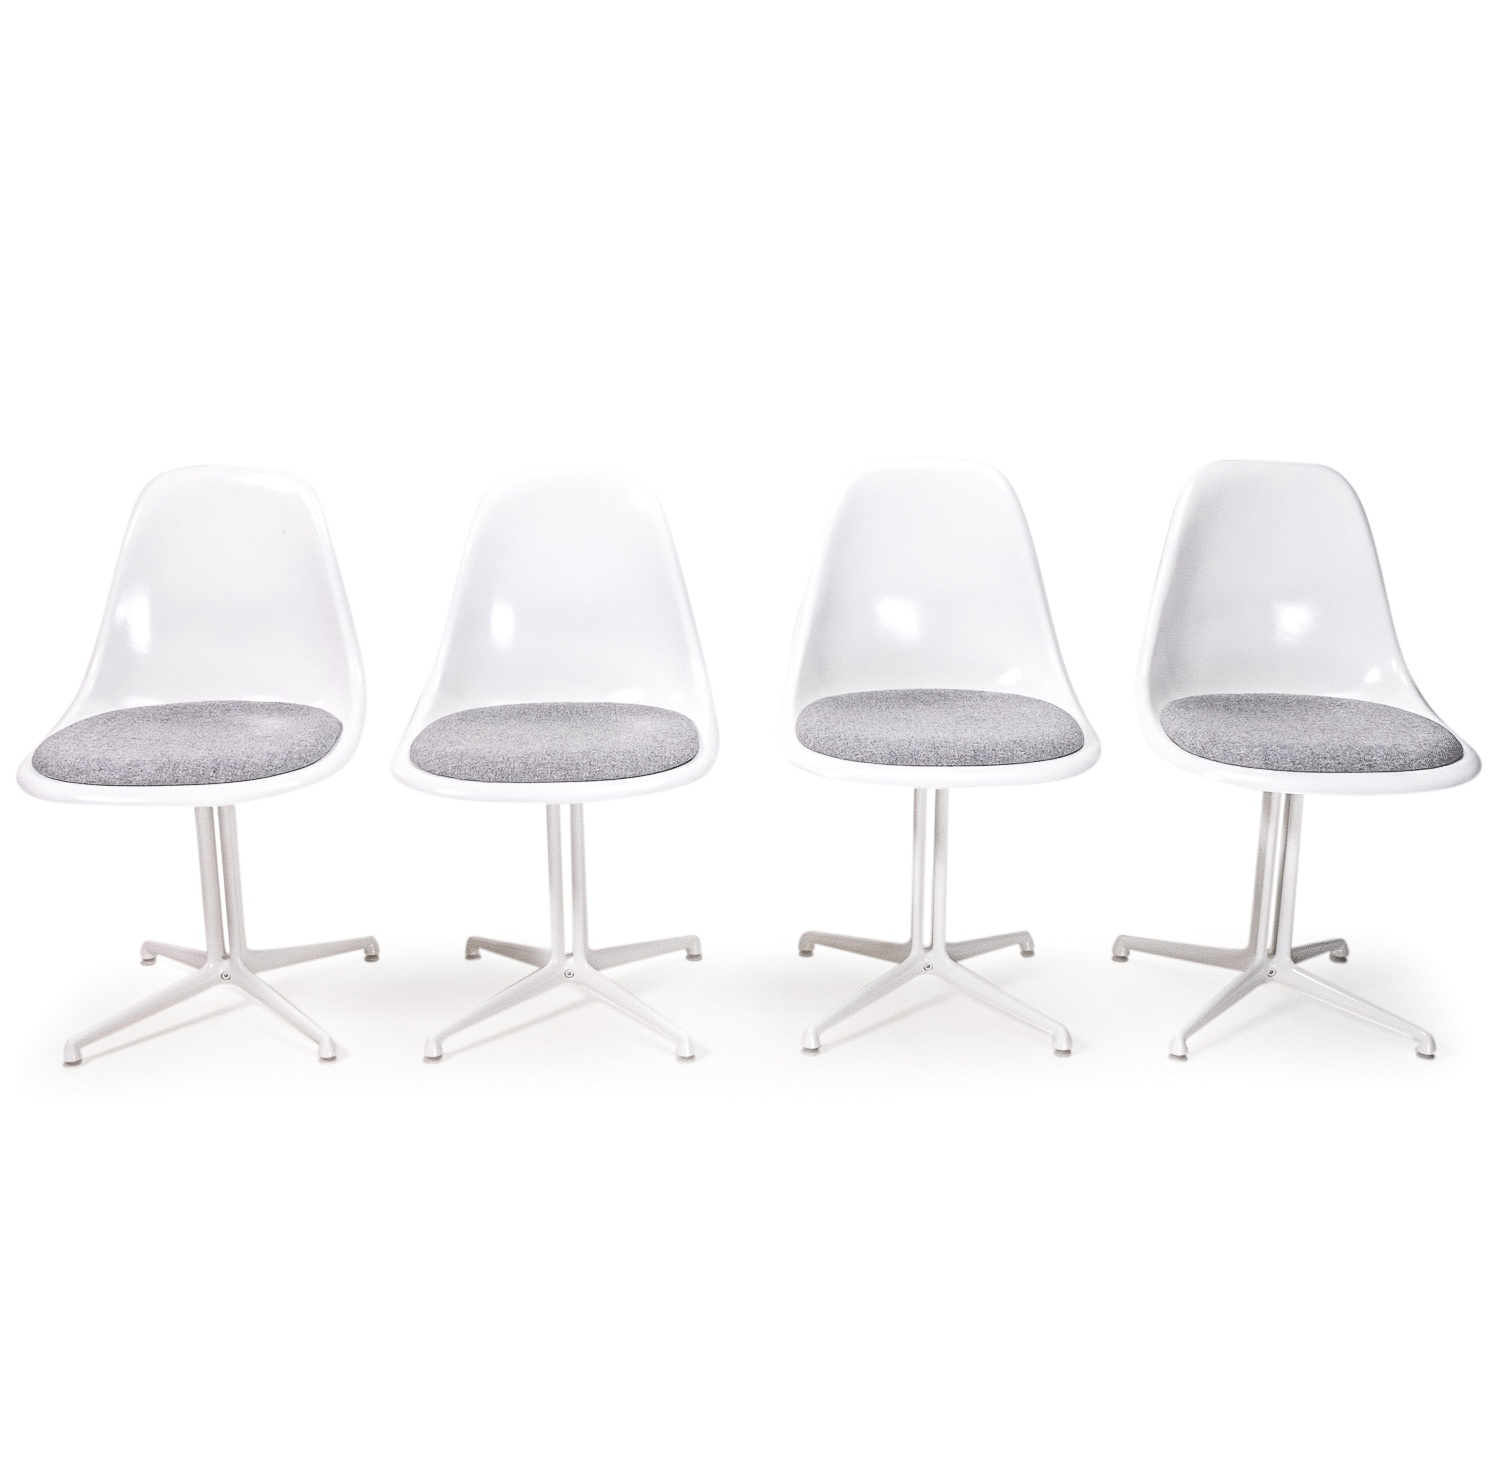 Herman miller Side Chair on la fonda base white